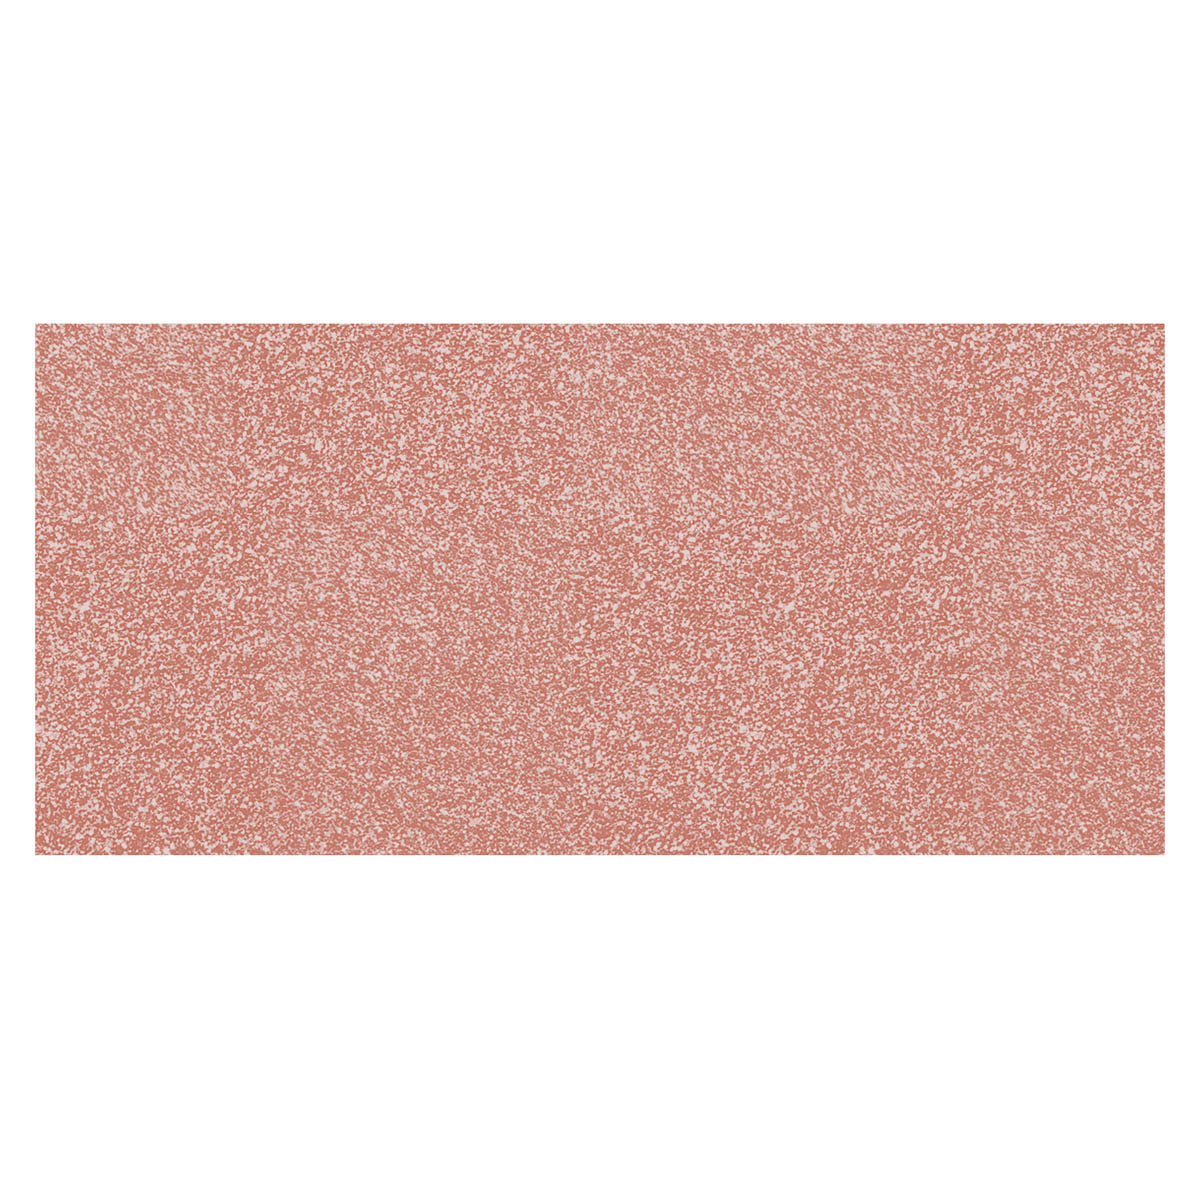 Waverly ® Inspirations Glitter Multi-Surface Acrylic Paint - Rose Gold, 2 oz.